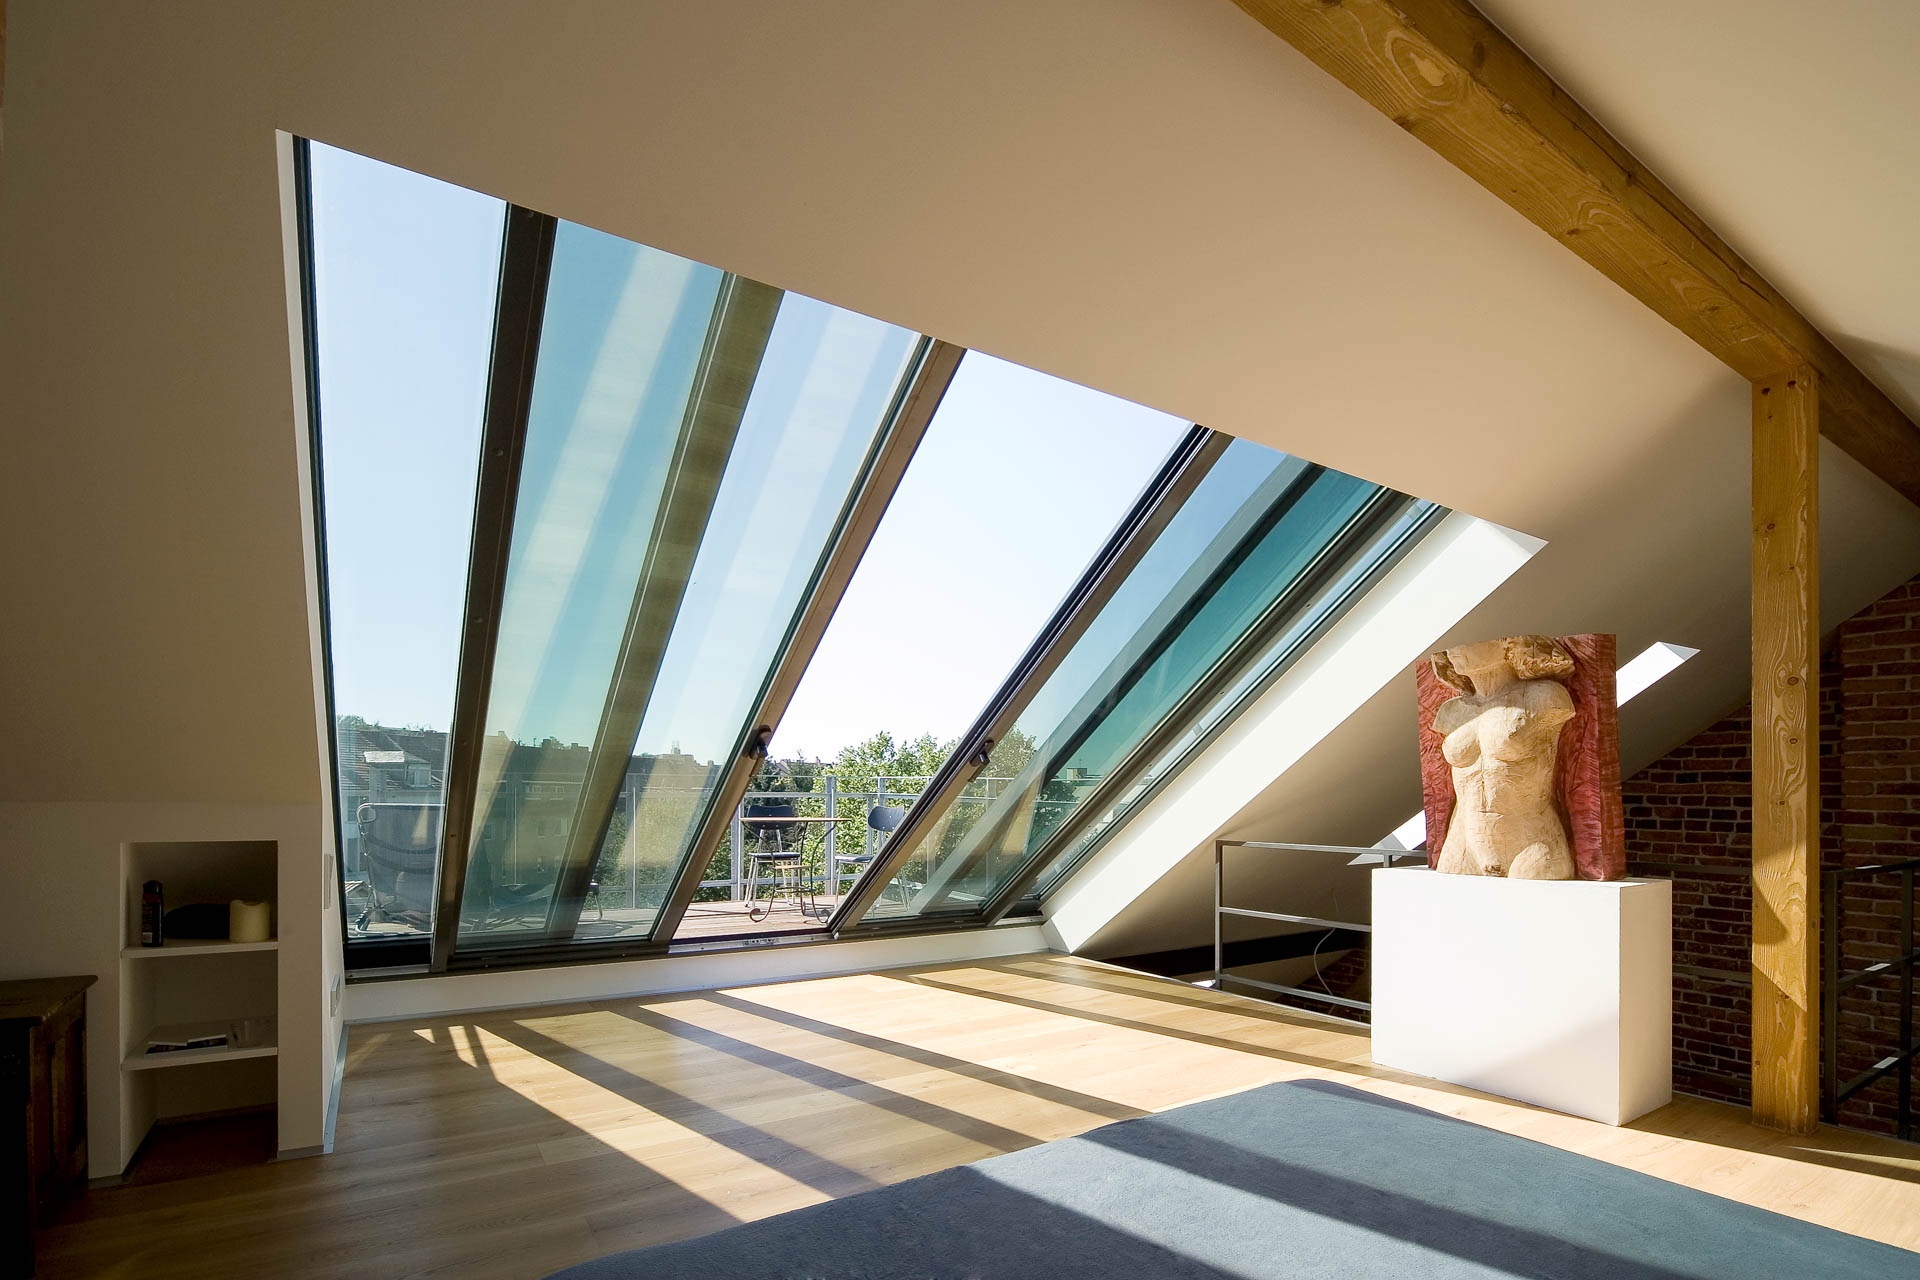 Panorama roof sliding window in Darmstadt (Object 983). Light, air and a stimulating working atmosphere in Darmstadt's artists' studio through a 4-part panorama AL roof sliding window (370 cm x 350 cm).